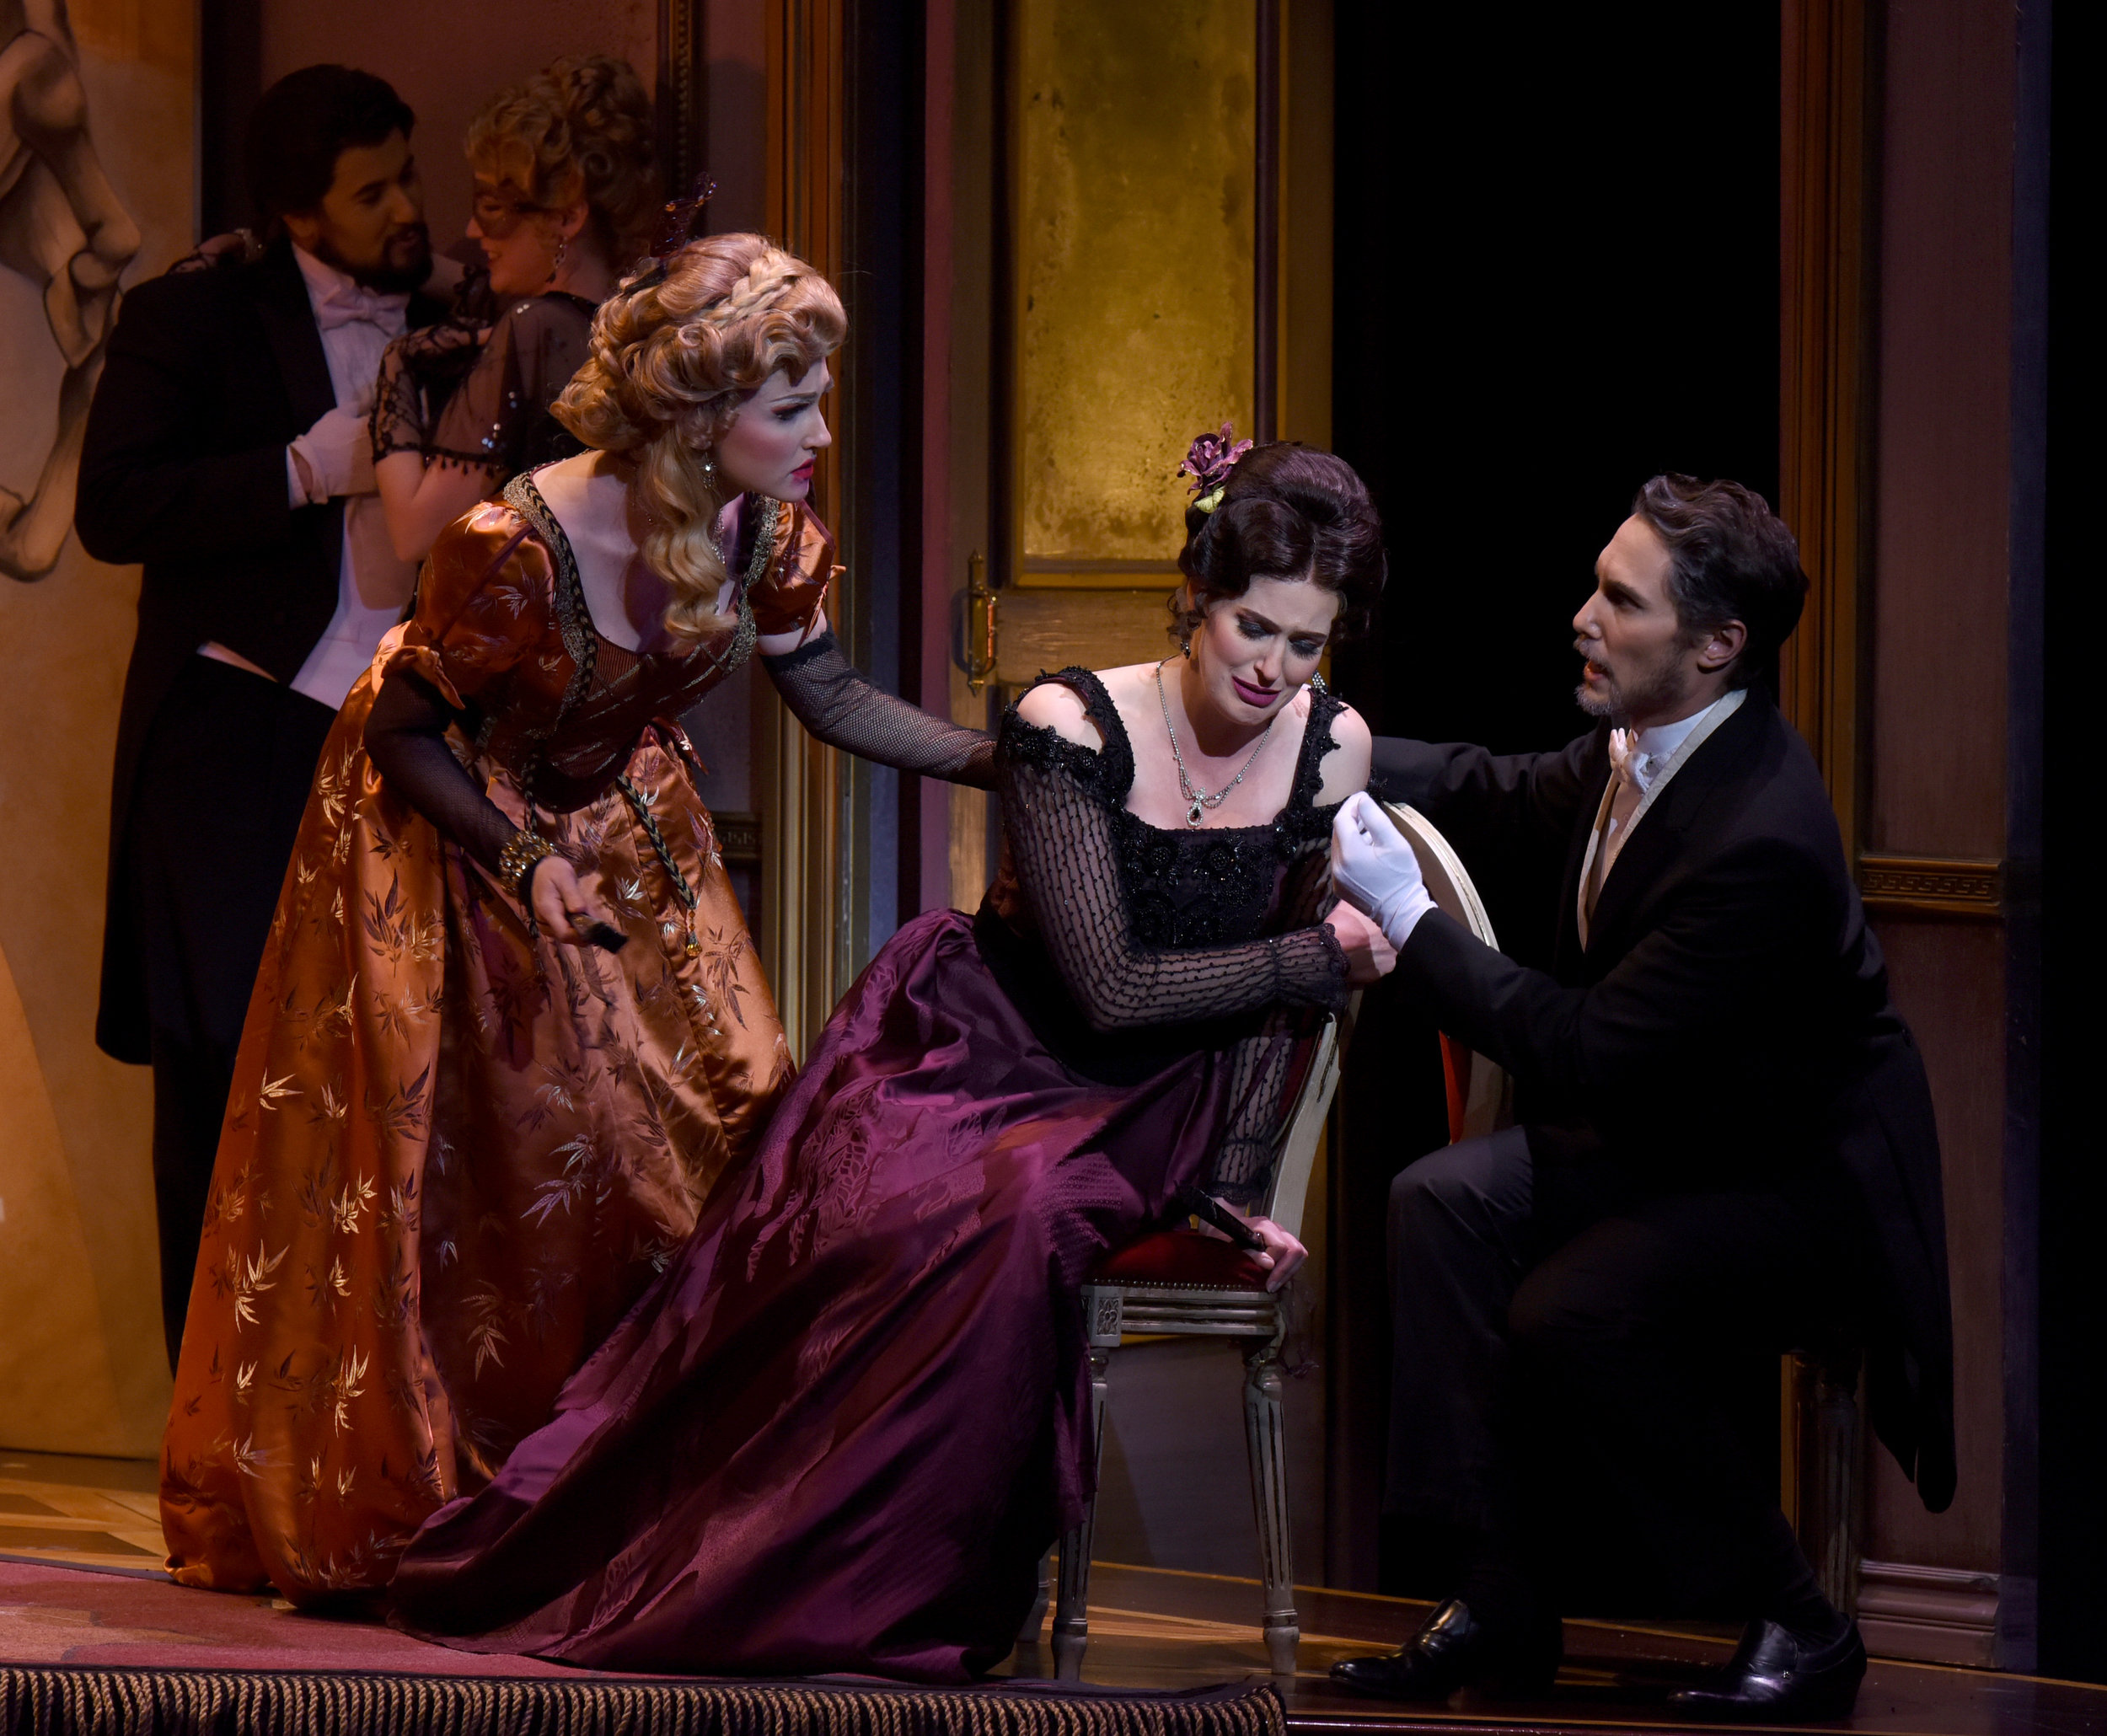 R to L: Christina Pezzarossi as Flora, Amanda Kingston as Violetta, Colin Ramsey as Dr. Grenville  Photo Credit: Pat Kirk